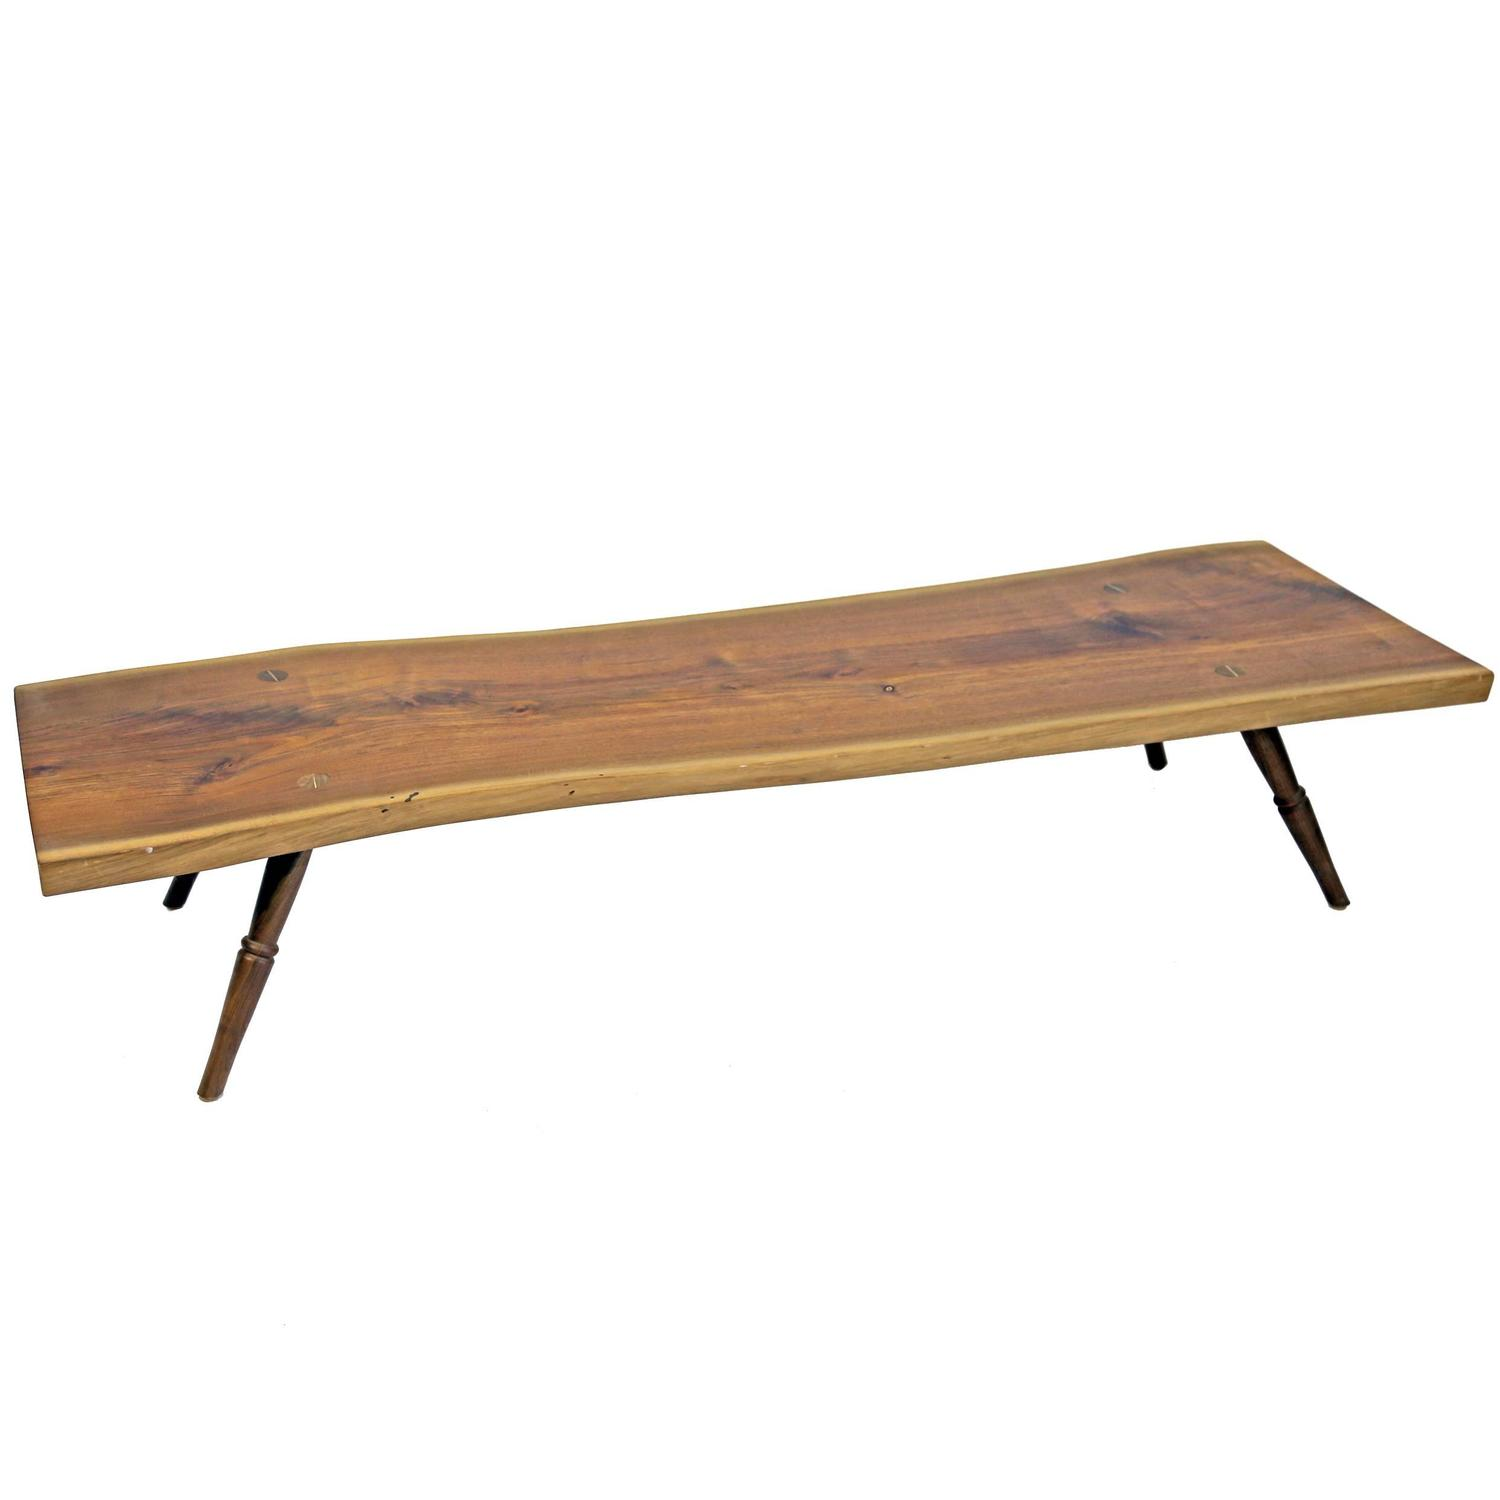 Shimna Handmade Amish Walnut Live Edge Slab Coffee Table With Turned Legs For Sale At 1stdibs